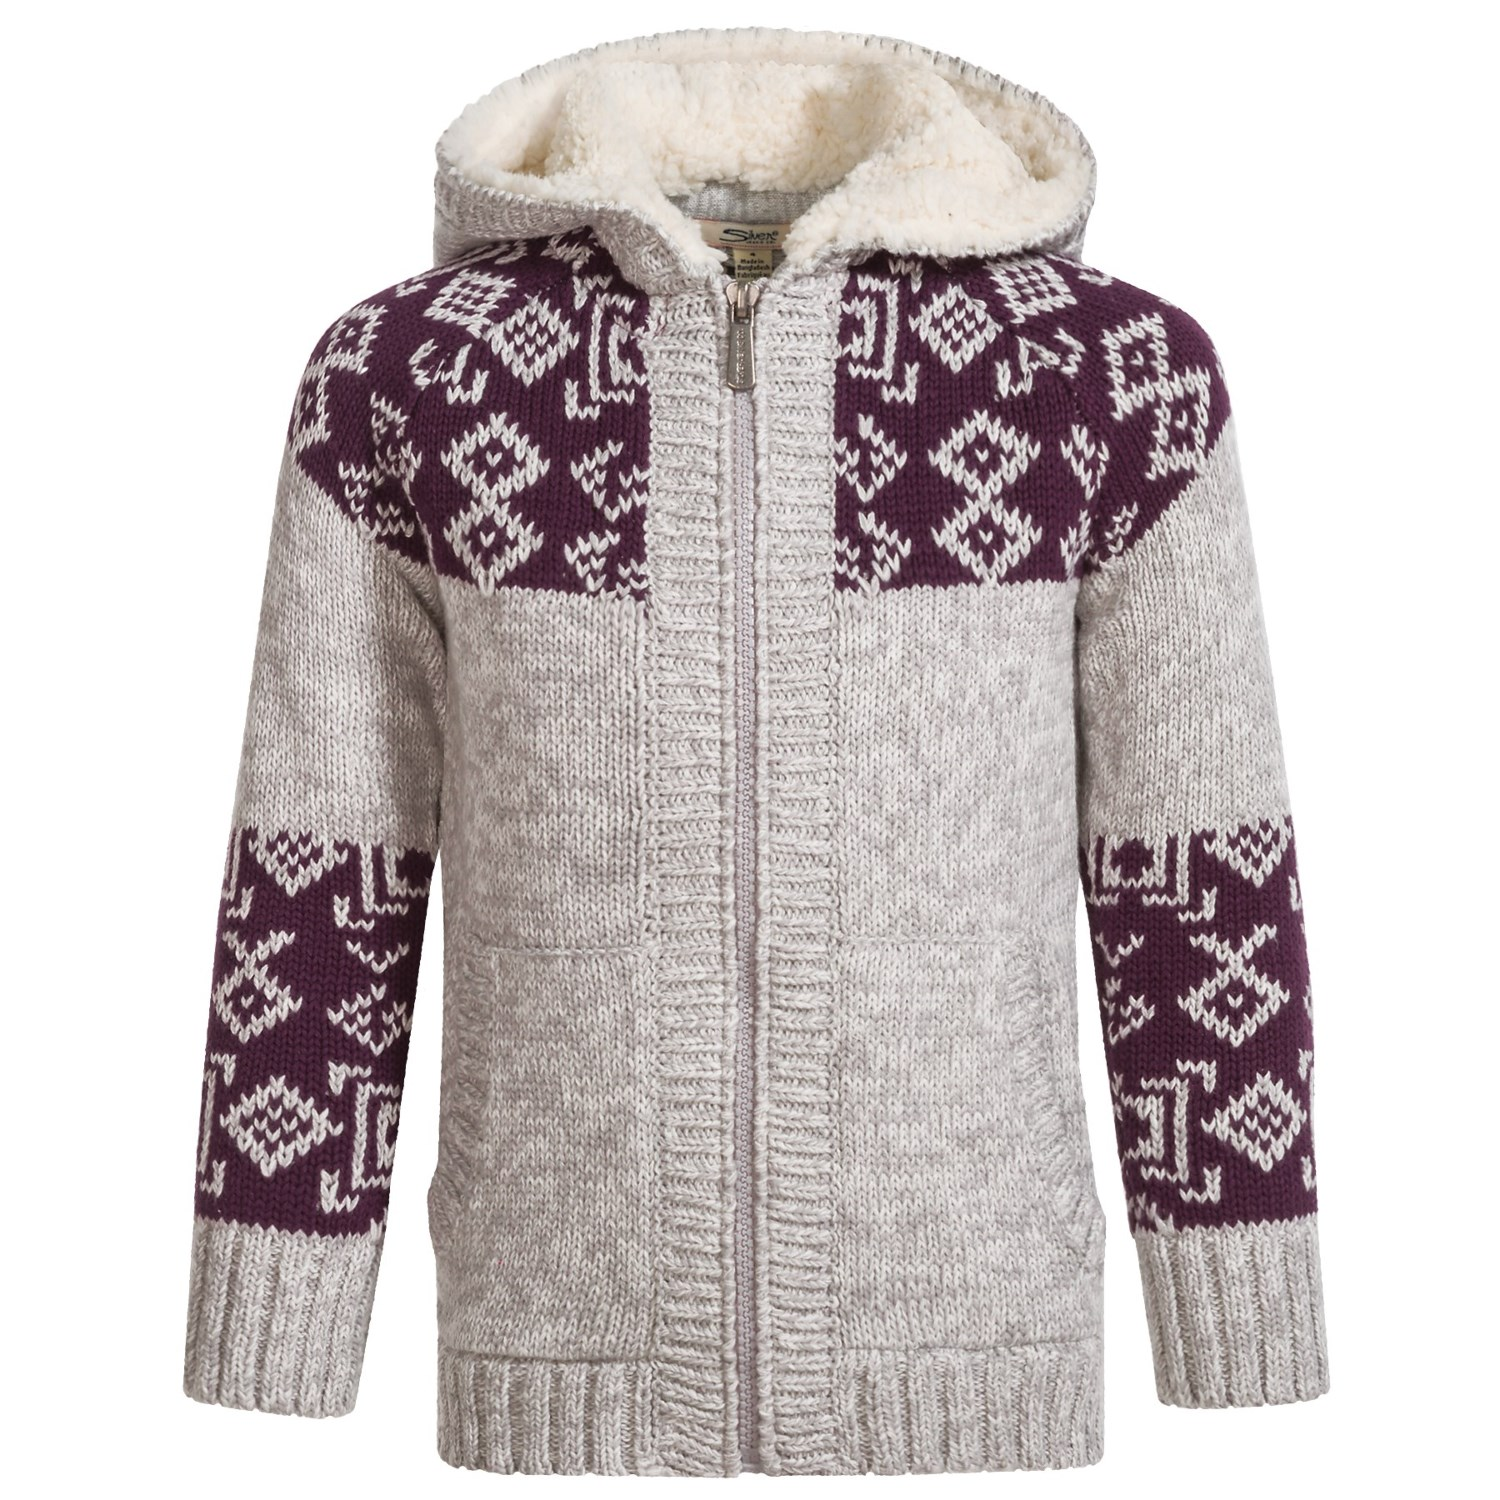 Silver Jeans Hooded Knit Sweater (For Big Girls) - Save 68%